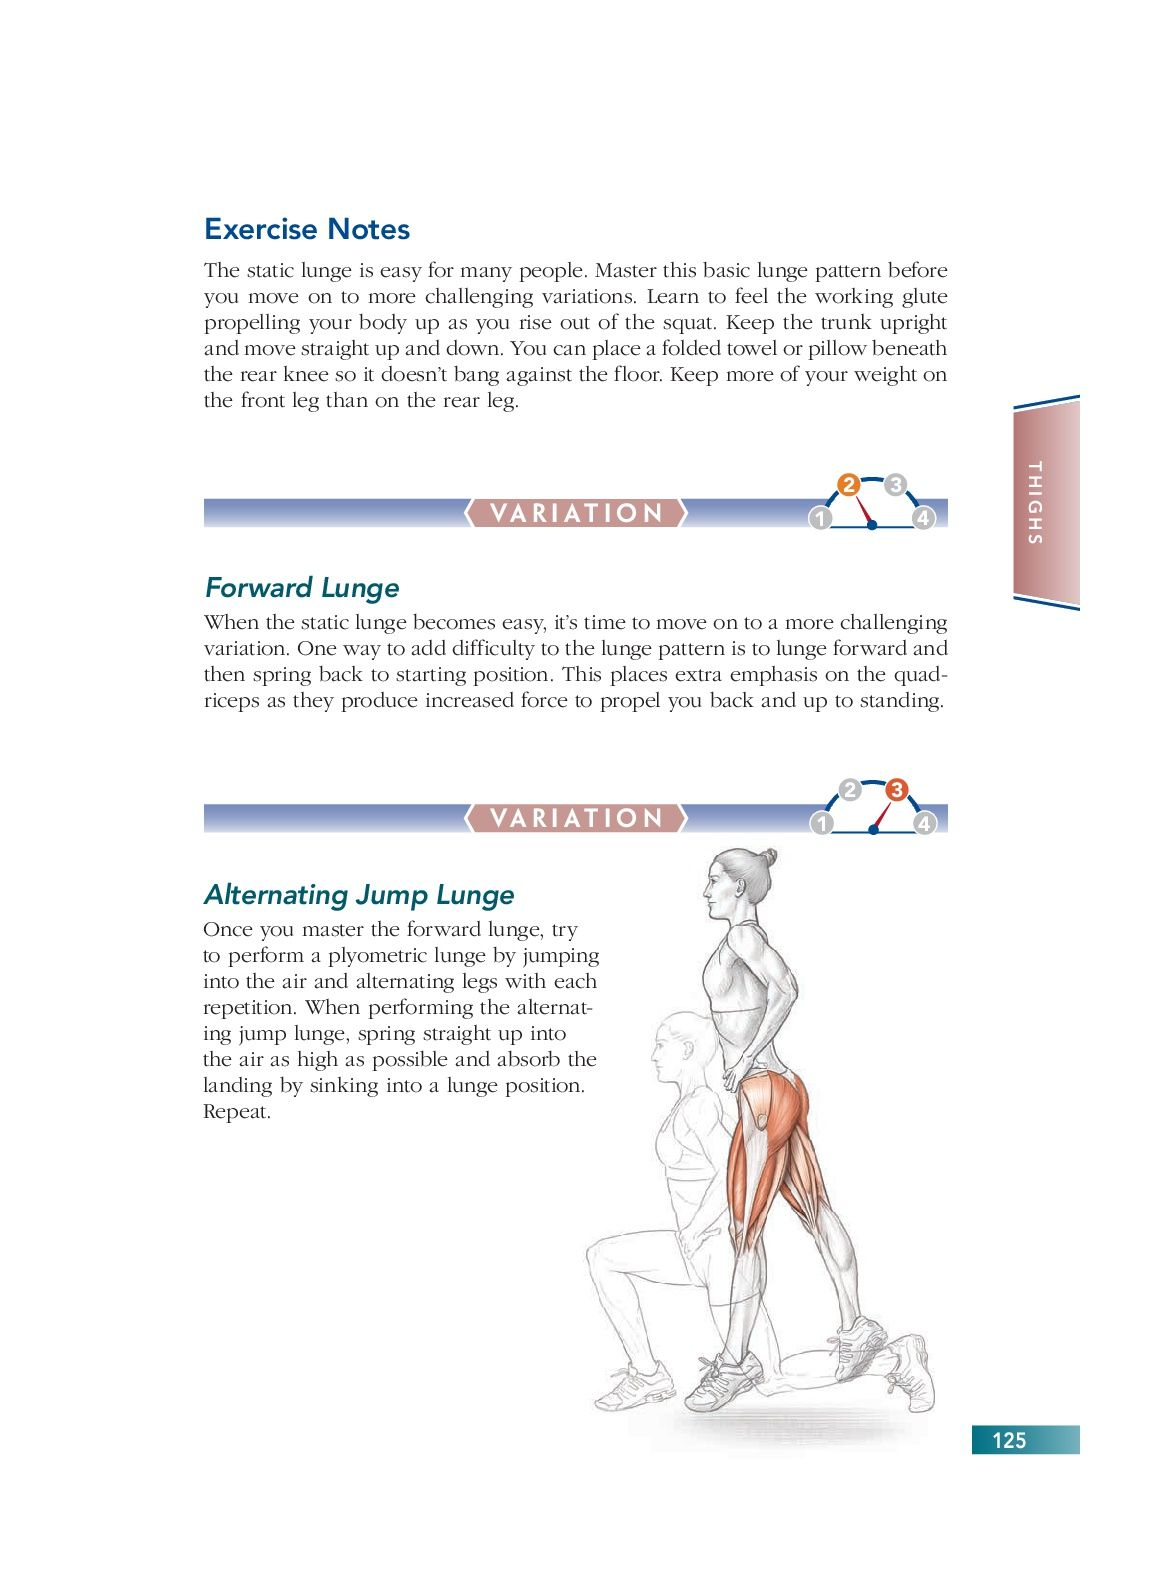 Chapter 7 Thighs (125) | Bodyweight Strength Training Anatomy ...